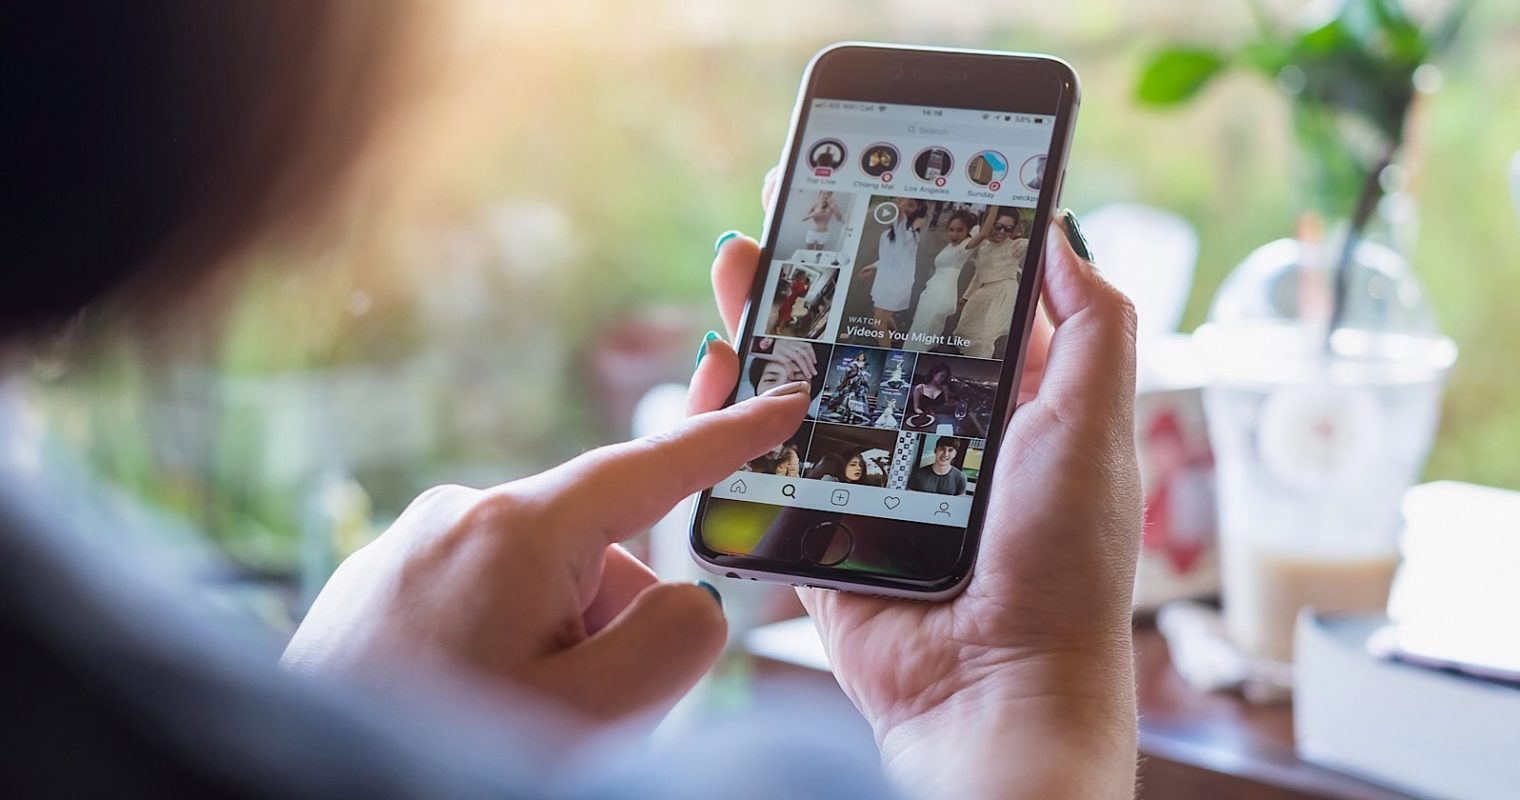 Instagram Decides Not to Alert Users When Screenshots Are Taken